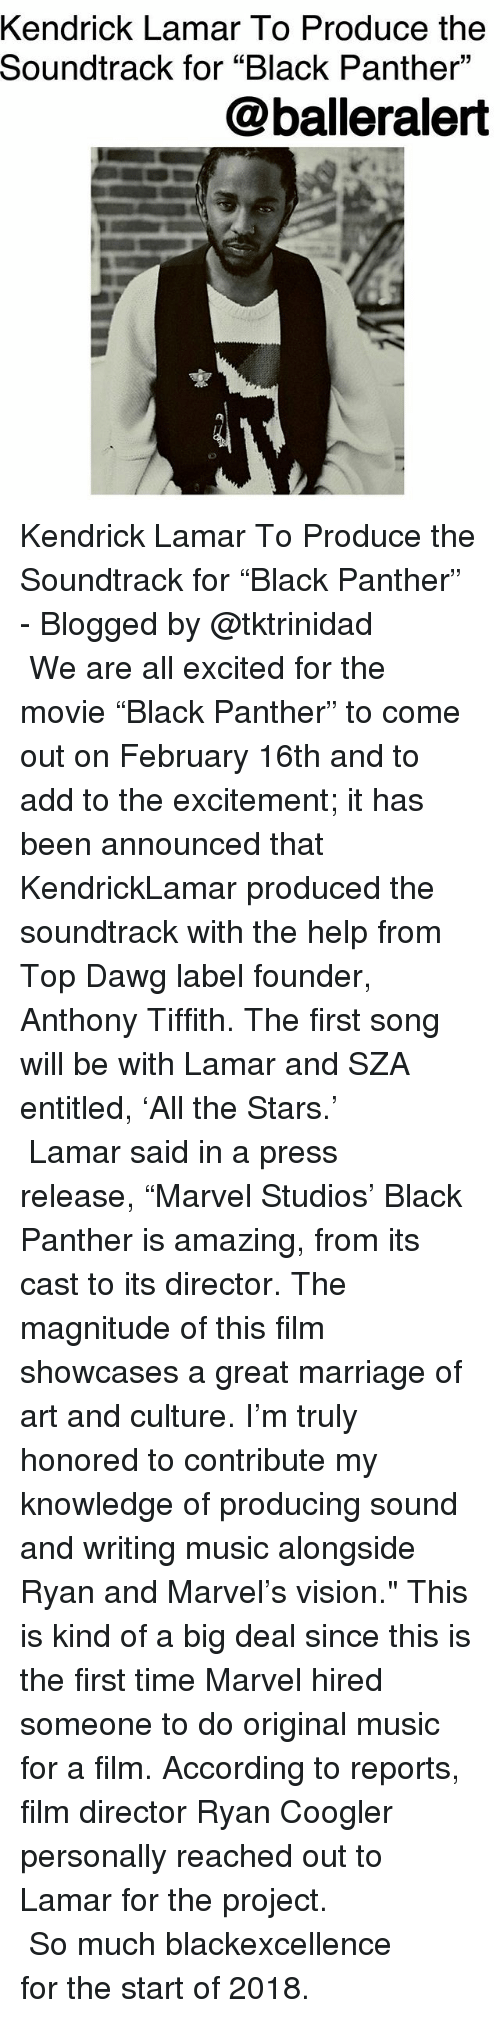 """Kendrick Lamar, Marriage, and Memes: Kendrick Lamar To Produce the  Soundtrack for """"Black Panther""""  @balleralert  09 Kendrick Lamar To Produce the Soundtrack for """"Black Panther"""" - Blogged by @tktrinidad ⠀⠀⠀⠀⠀⠀⠀⠀ ⠀⠀⠀⠀⠀⠀⠀⠀ We are all excited for the movie """"Black Panther"""" to come out on February 16th and to add to the excitement; it has been announced that KendrickLamar produced the soundtrack with the help from Top Dawg label founder, Anthony Tiffith. The first song will be with Lamar and SZA entitled, 'All the Stars.' ⠀⠀⠀⠀⠀⠀⠀⠀ ⠀⠀⠀⠀⠀⠀⠀⠀ Lamar said in a press release, """"Marvel Studios' Black Panther is amazing, from its cast to its director. The magnitude of this film showcases a great marriage of art and culture. I'm truly honored to contribute my knowledge of producing sound and writing music alongside Ryan and Marvel's vision."""" This is kind of a big deal since this is the first time Marvel hired someone to do original music for a film. According to reports, film director Ryan Coogler personally reached out to Lamar for the project. ⠀⠀⠀⠀⠀⠀⠀⠀ ⠀⠀⠀⠀⠀⠀⠀⠀ So much blackexcellence for the start of 2018."""